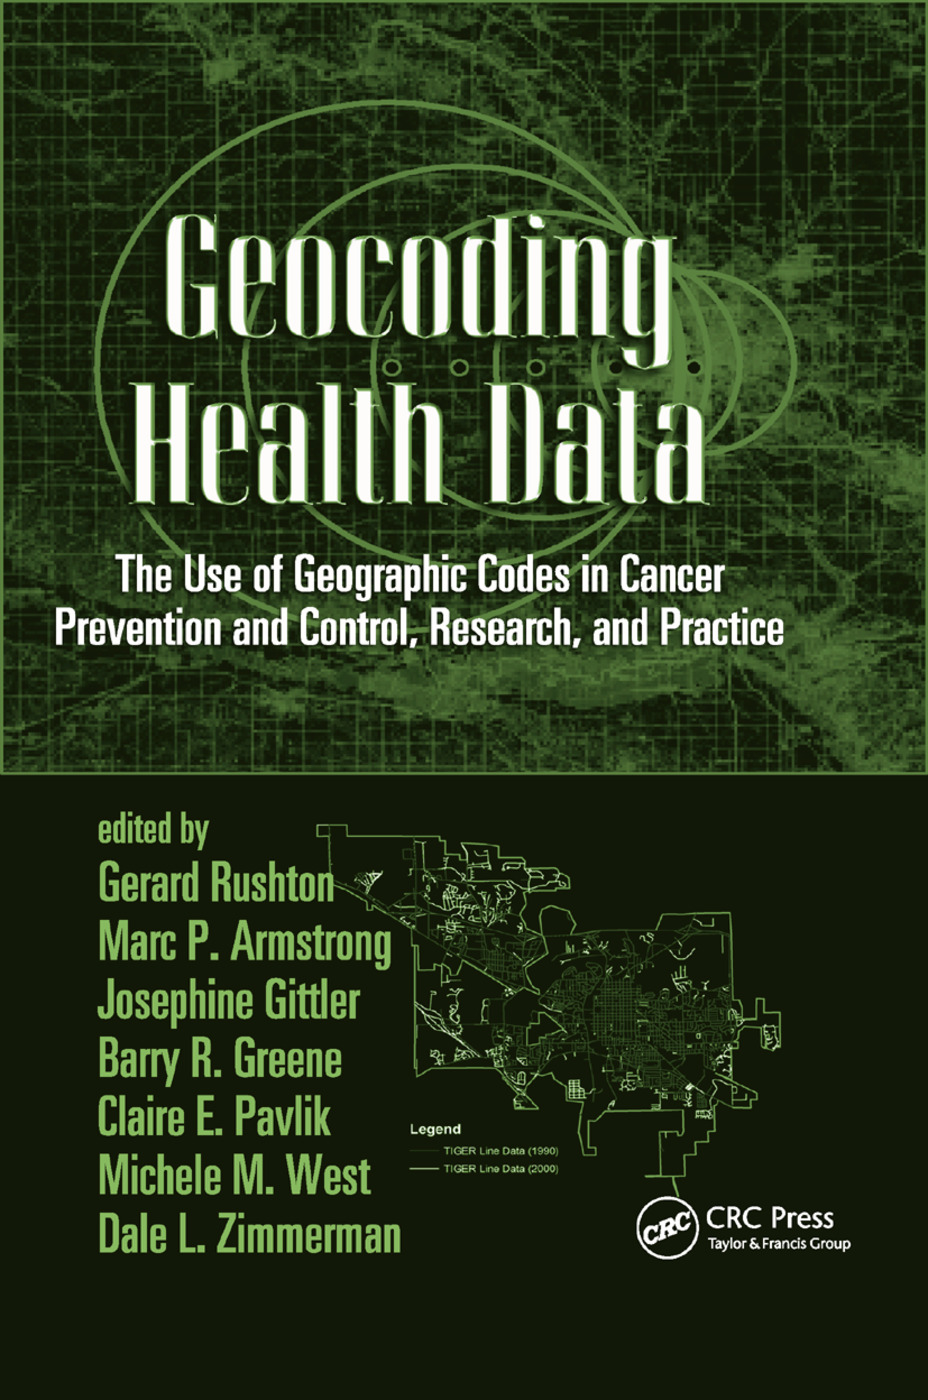 Geocoding Health Data: The Use of Geographic Codes in Cancer Prevention and Control, Research and Practice, 1st Edition (Paperback) book cover